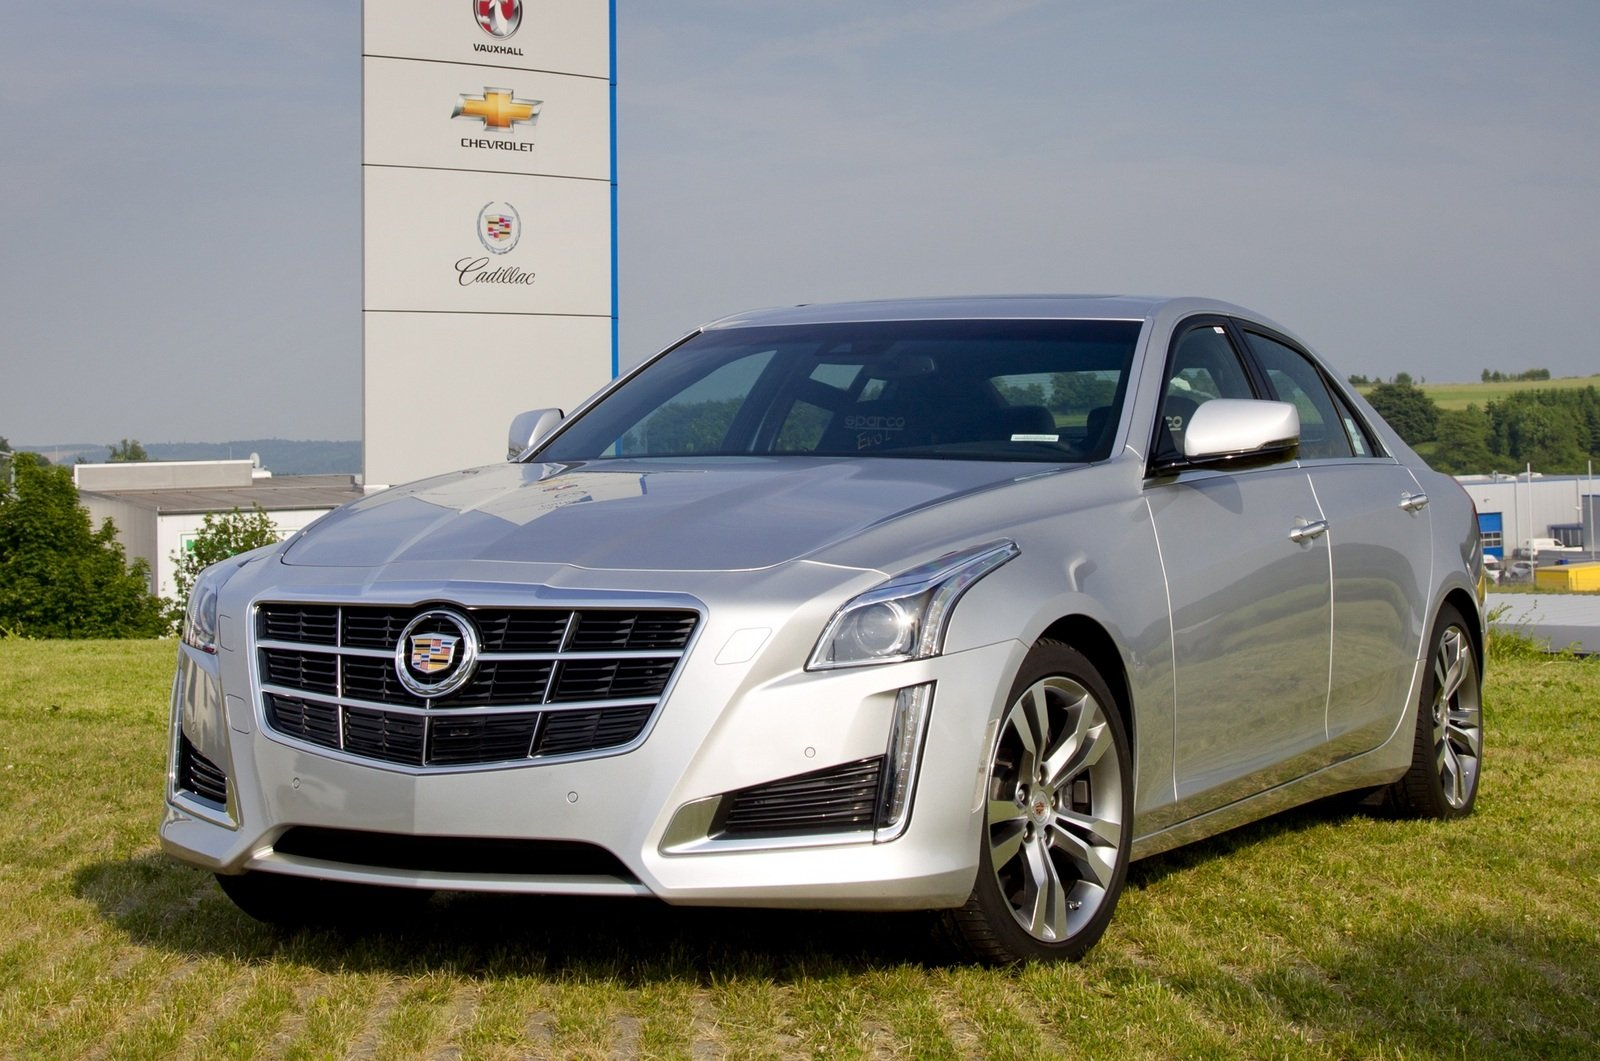 2014 cadillac cts sedan picture 520306 car review top speed. Cars Review. Best American Auto & Cars Review